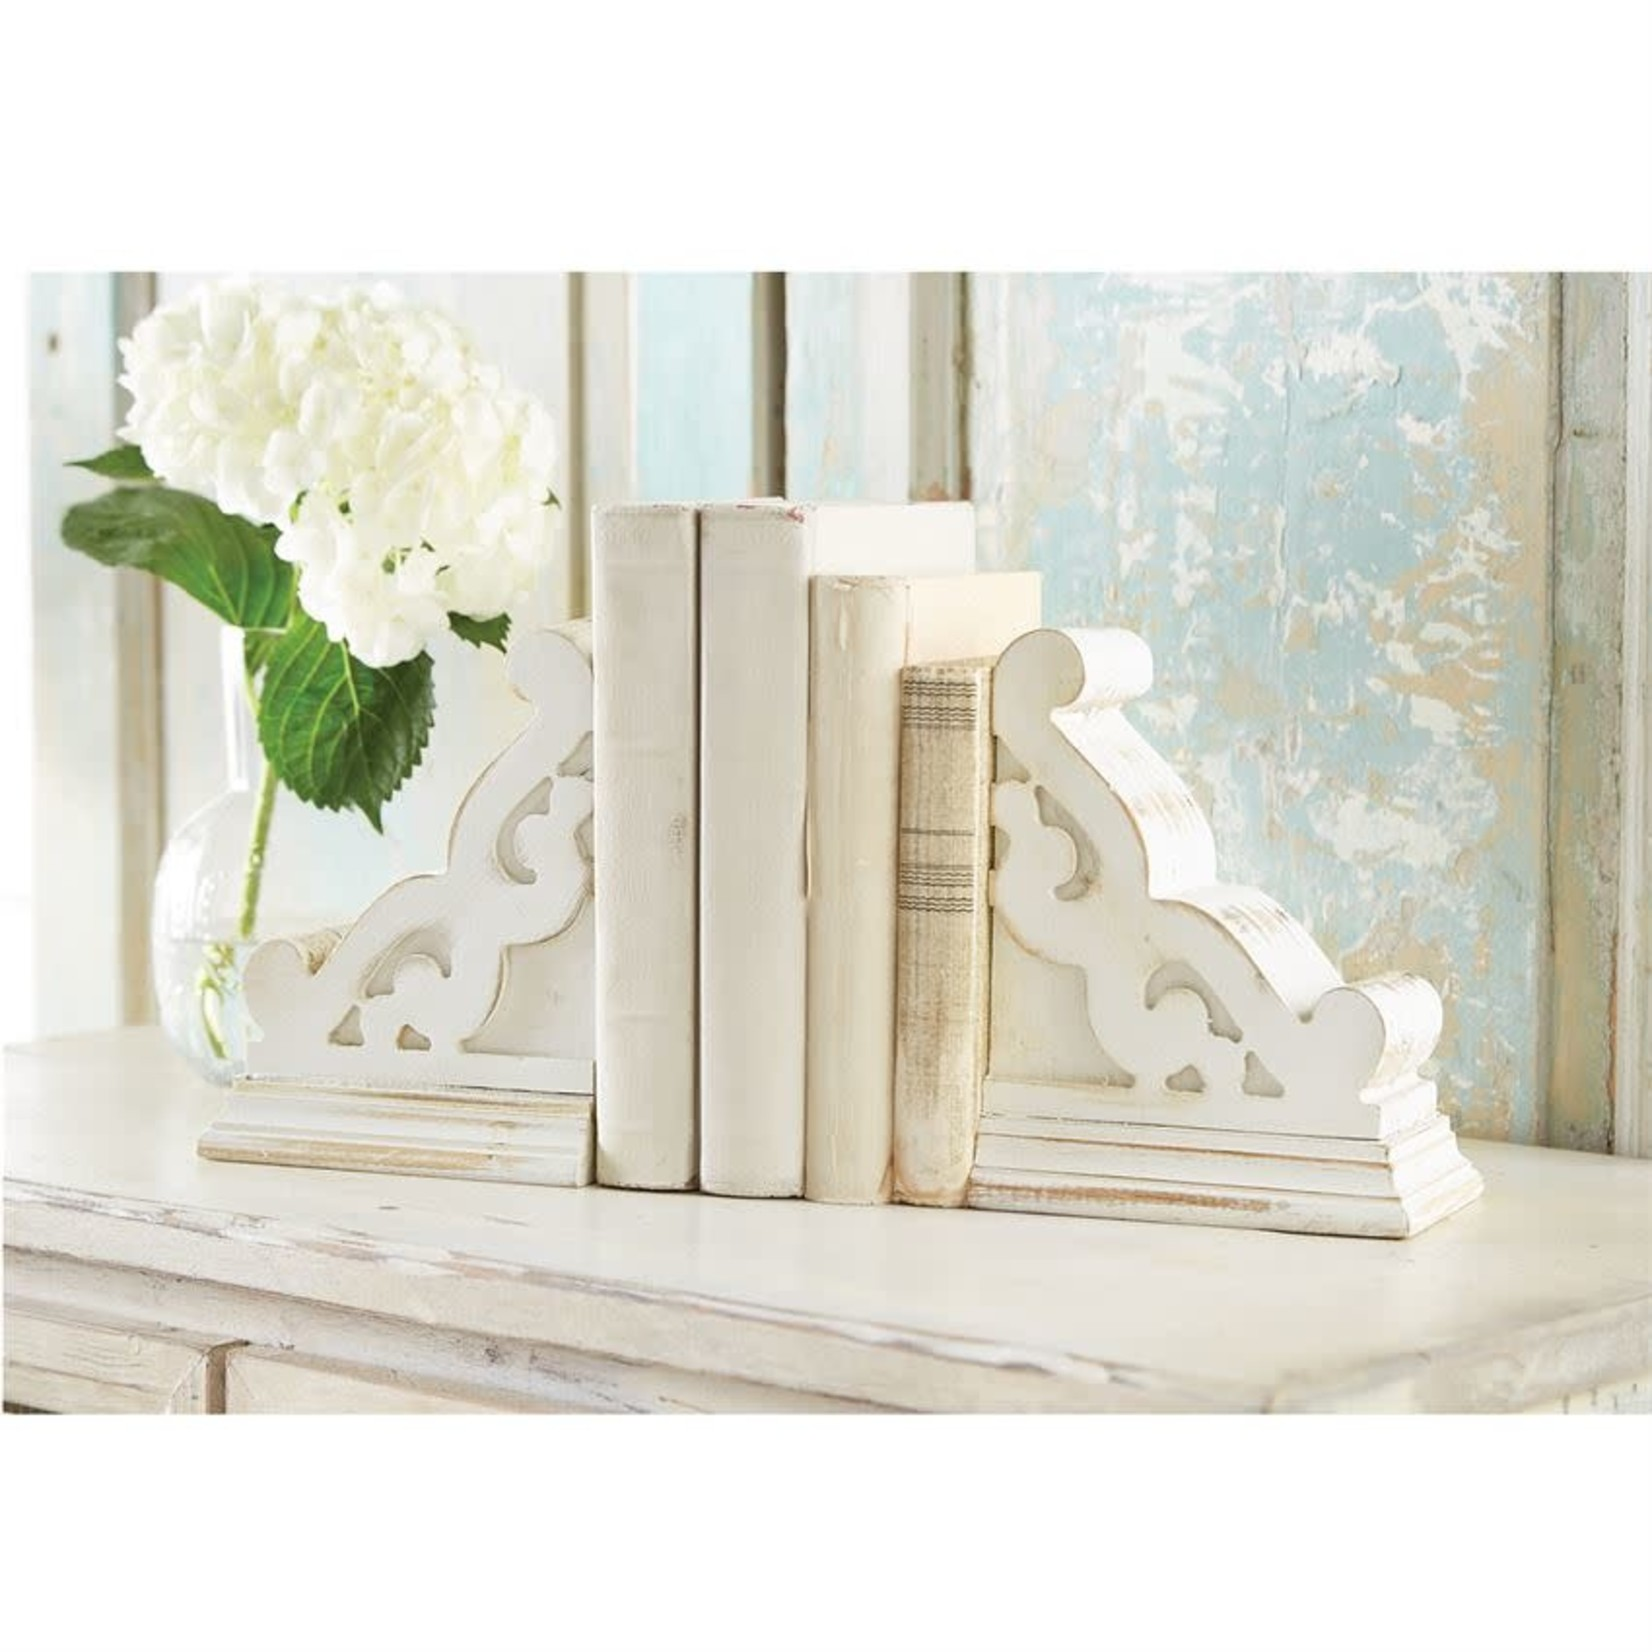 Corbel Bookends